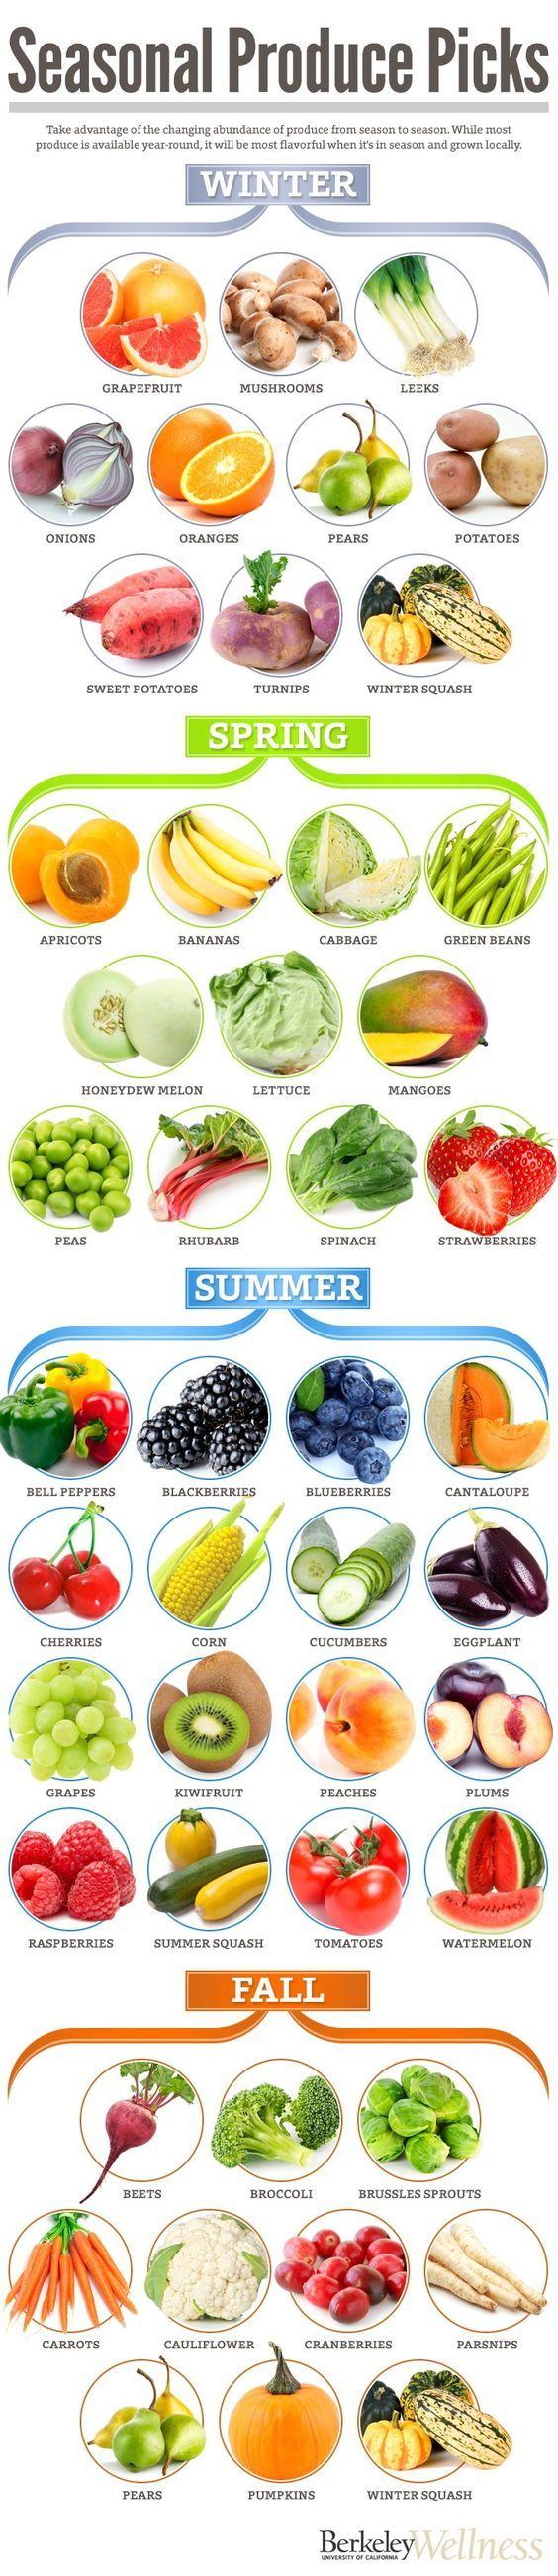 What's in season? Here is a helpful guide to help you select produce that's at its peak.